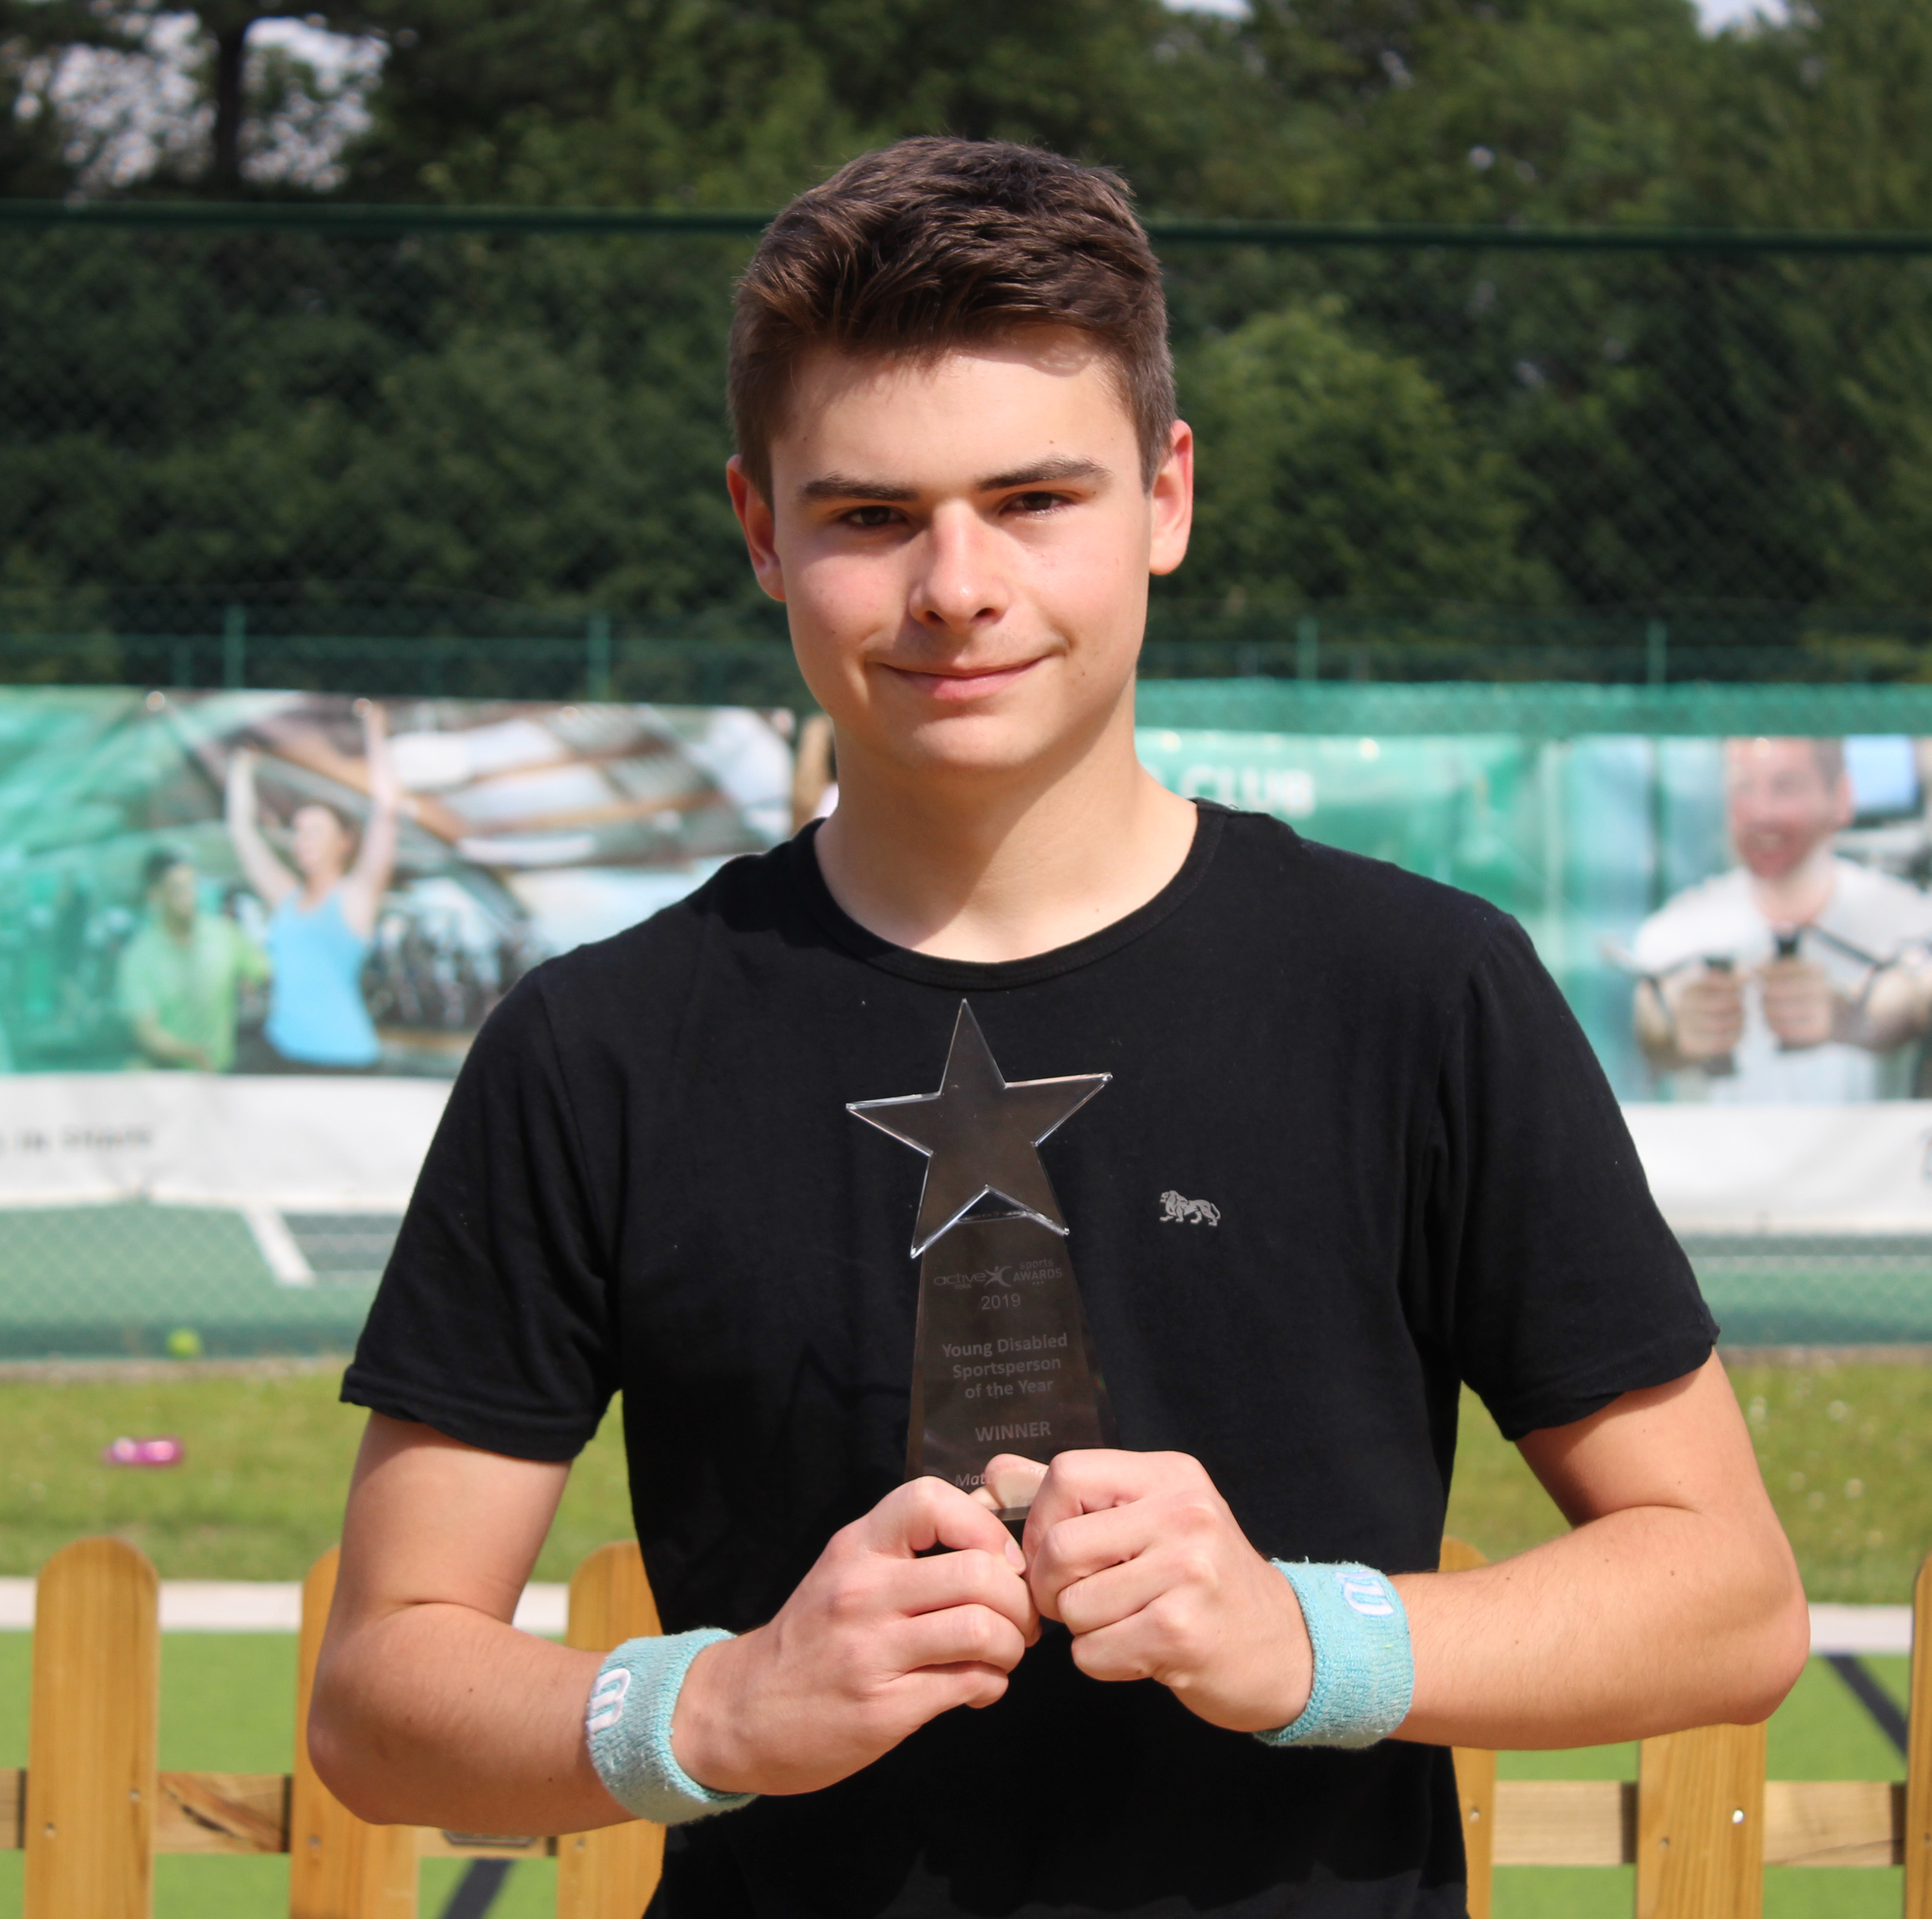 Matthew Brough with his Young Disabled Sportsperson of the Year trophy